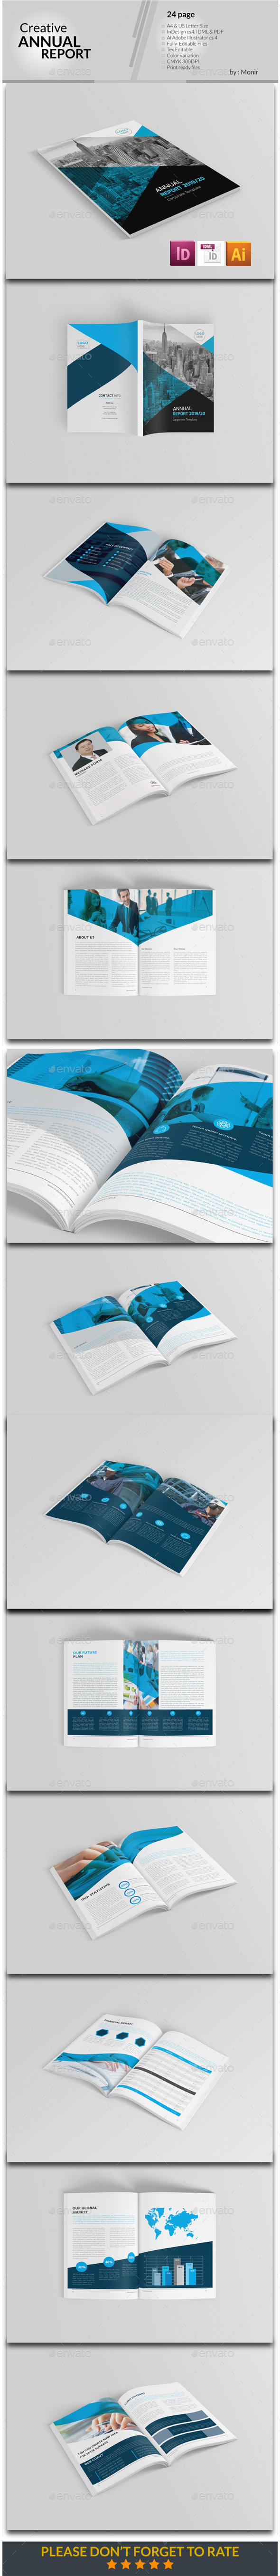 Annual Report - Proposals & Invoices Stationery